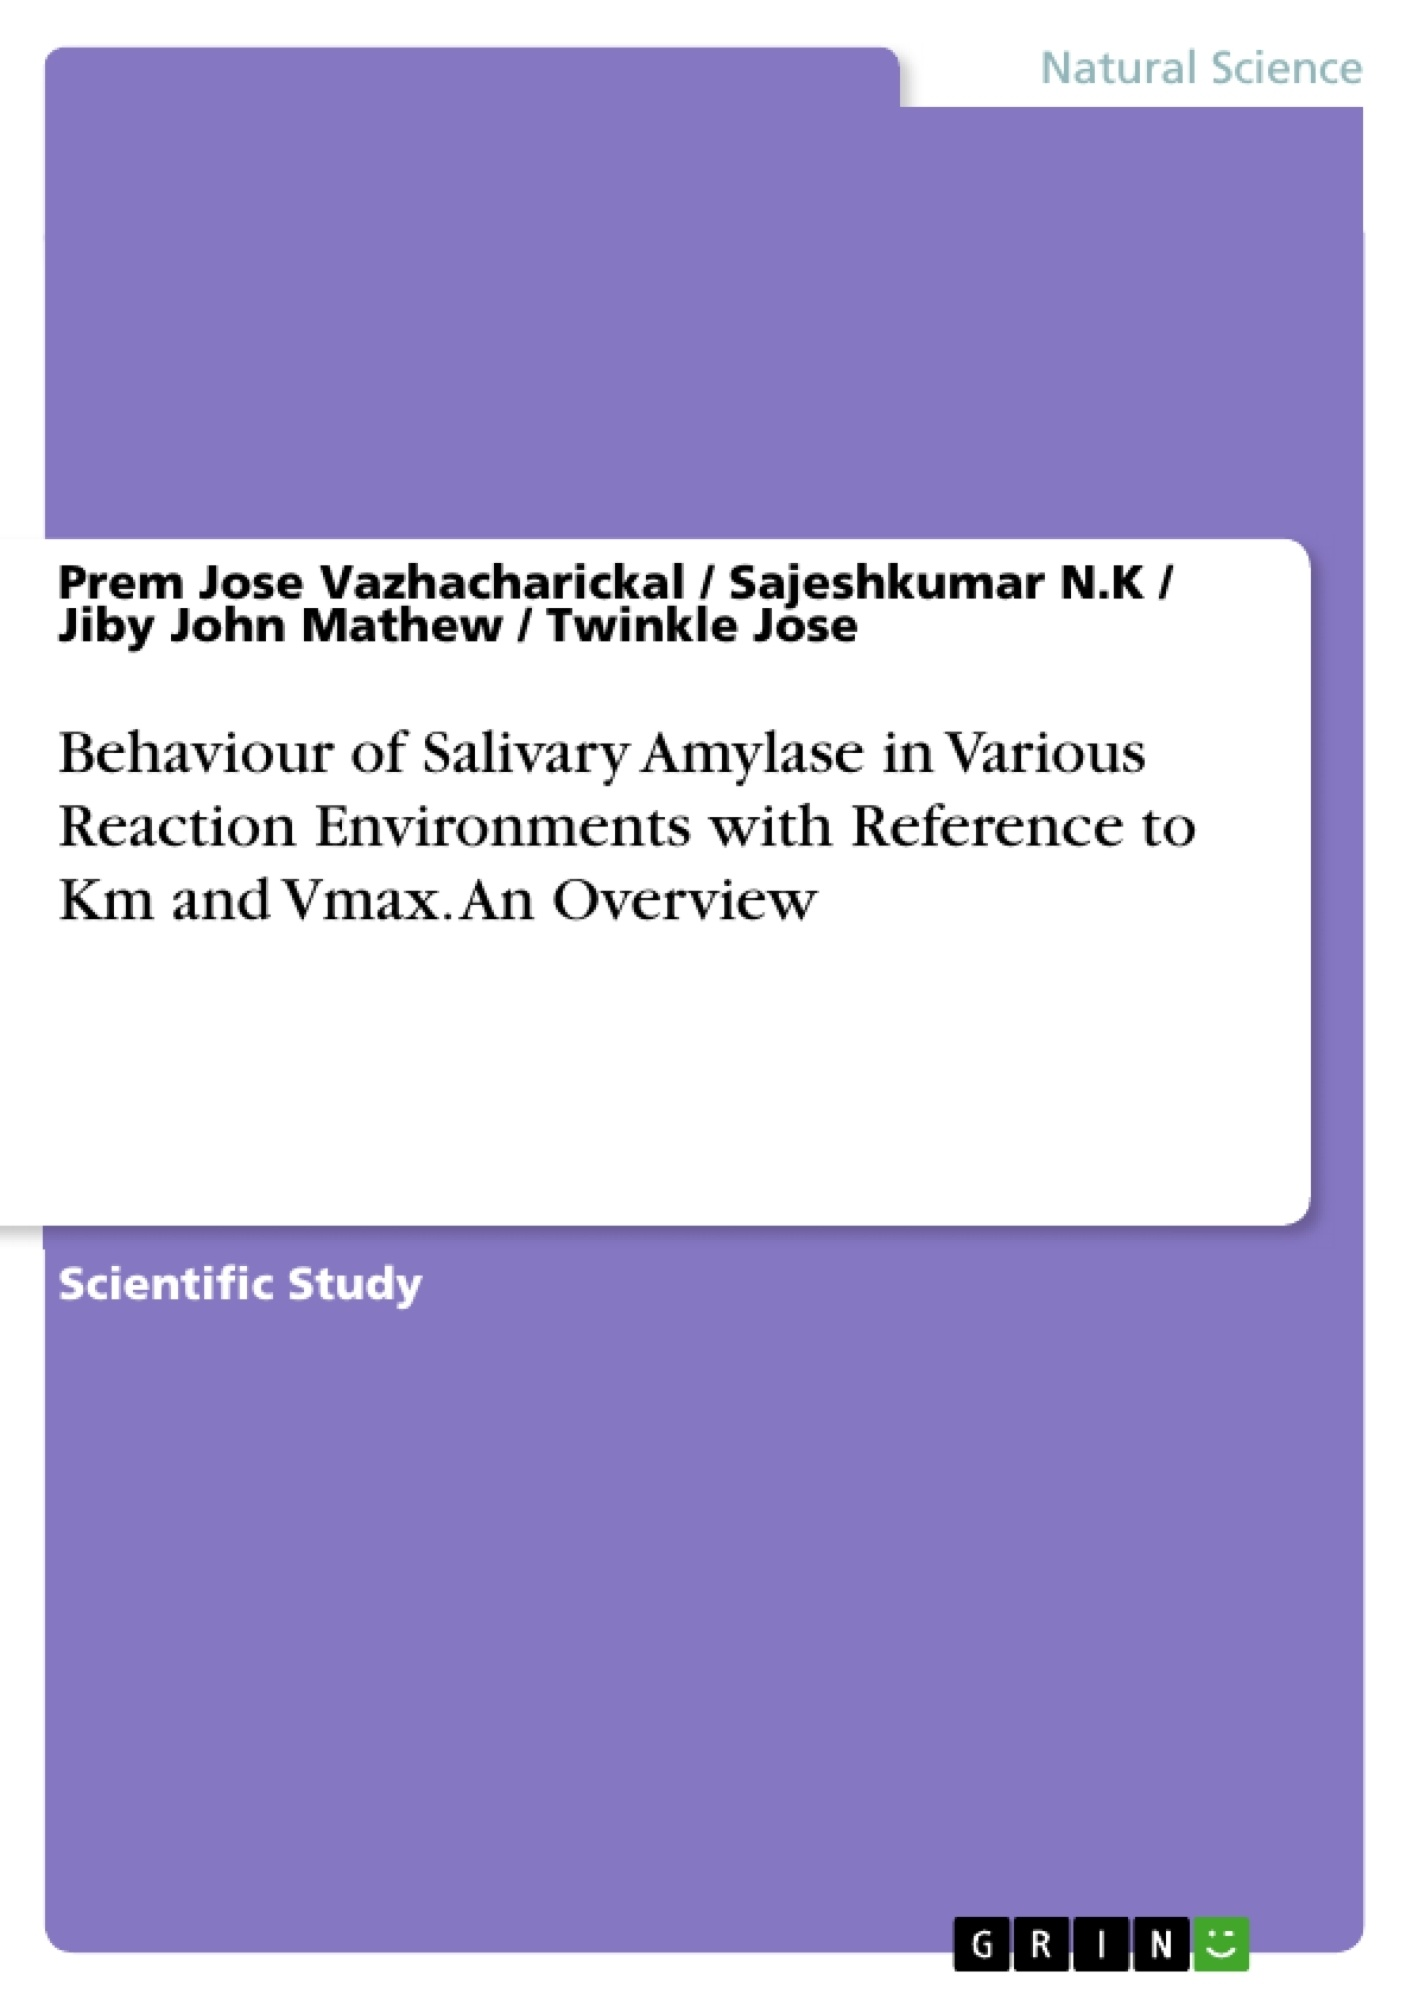 Title: Behaviour of Salivary Amylase in Various Reaction Environments with Reference to Km and Vmax. An Overview